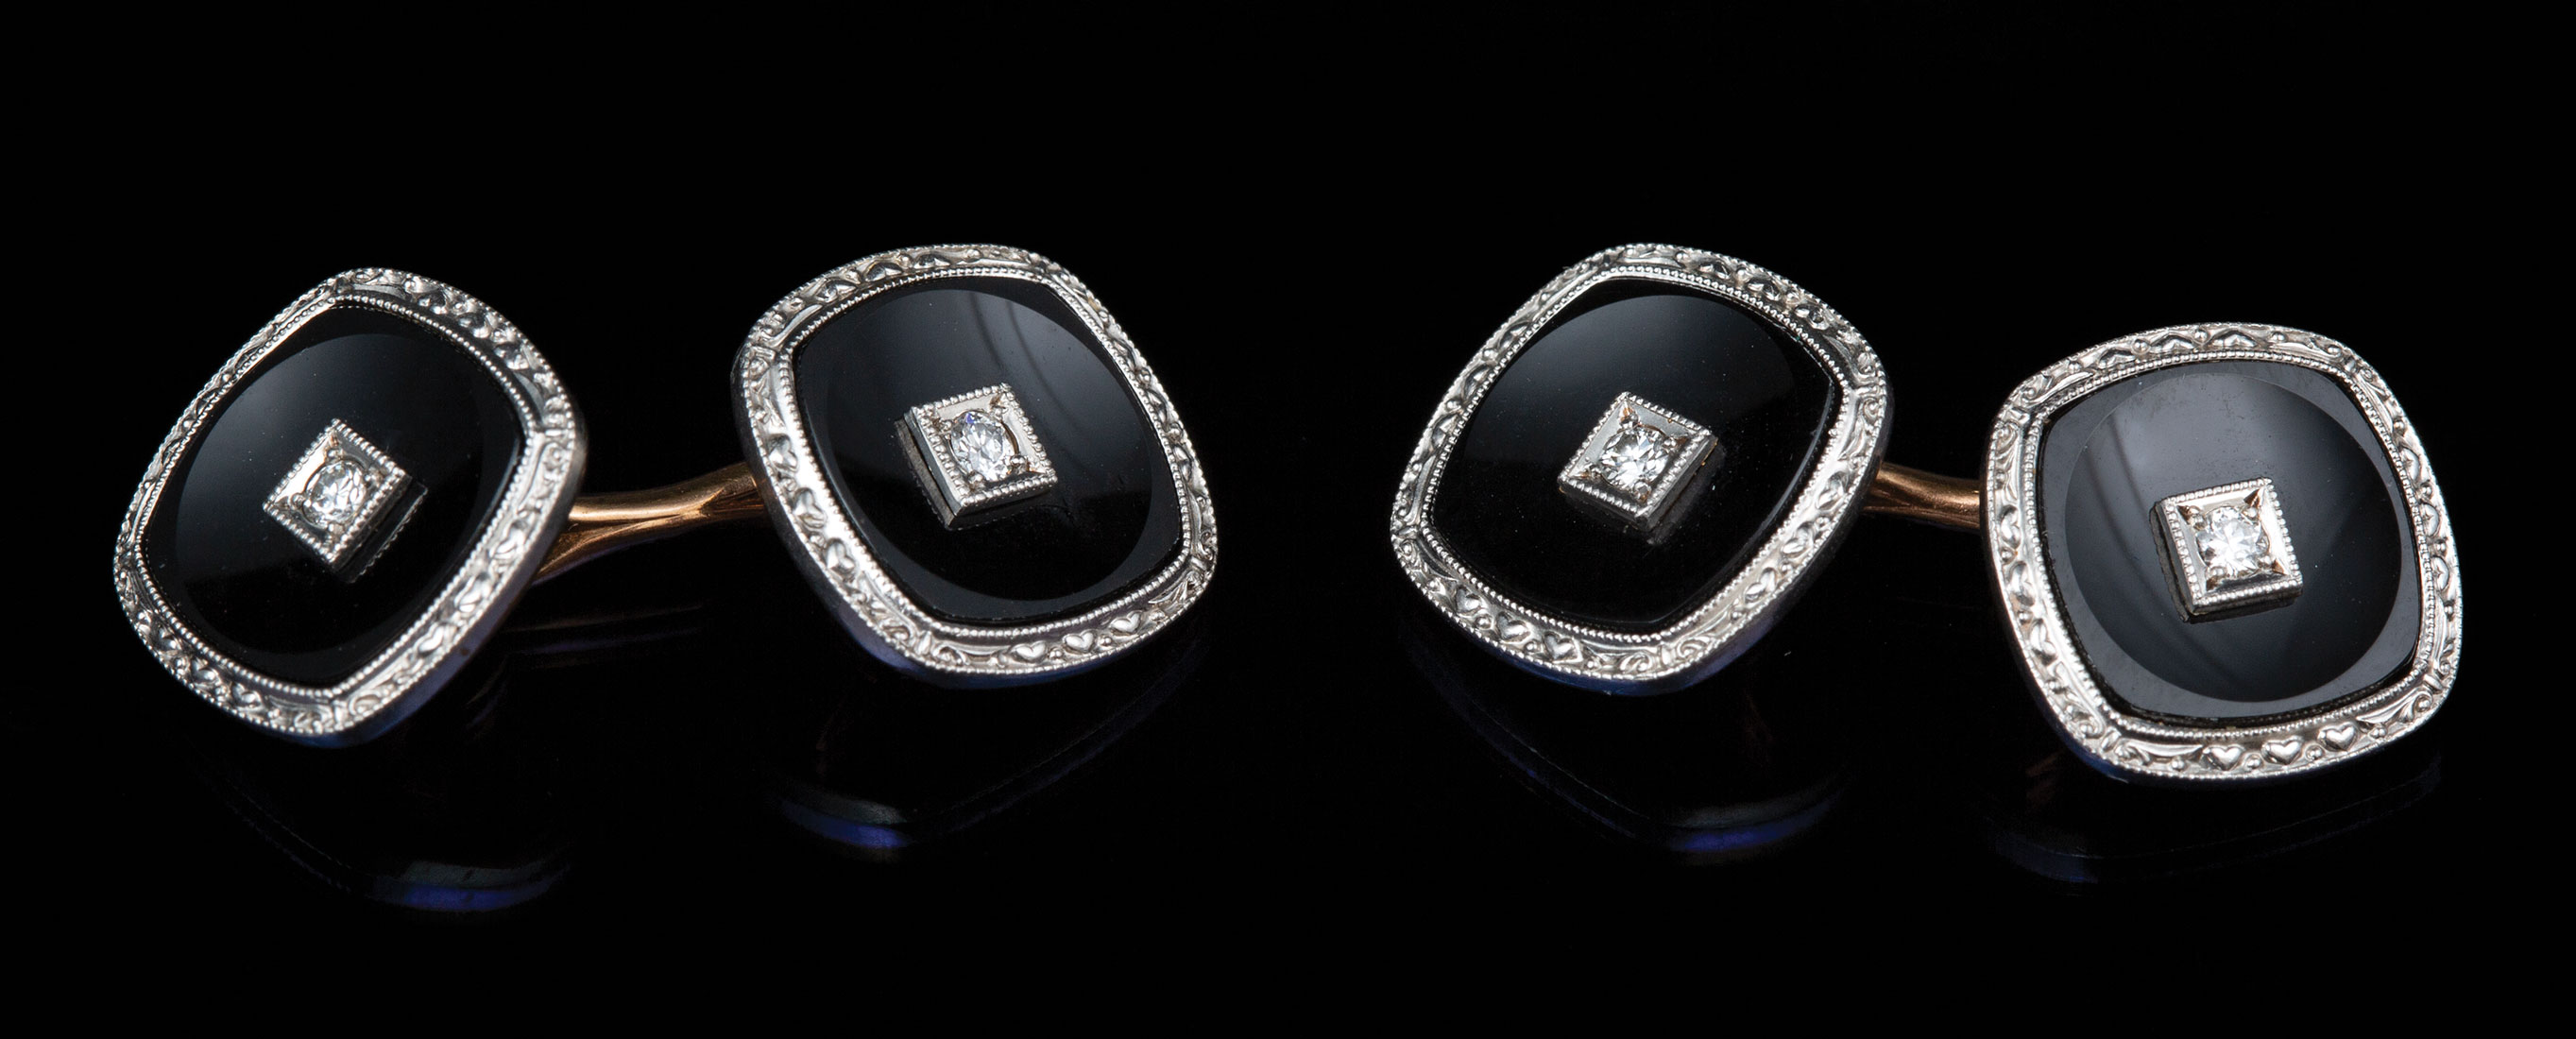 Lot 622 - Pair of 14 kt. Yellow Gold, Onyx and Diamond Cufflinks , onyx square centered by round brilliant cut